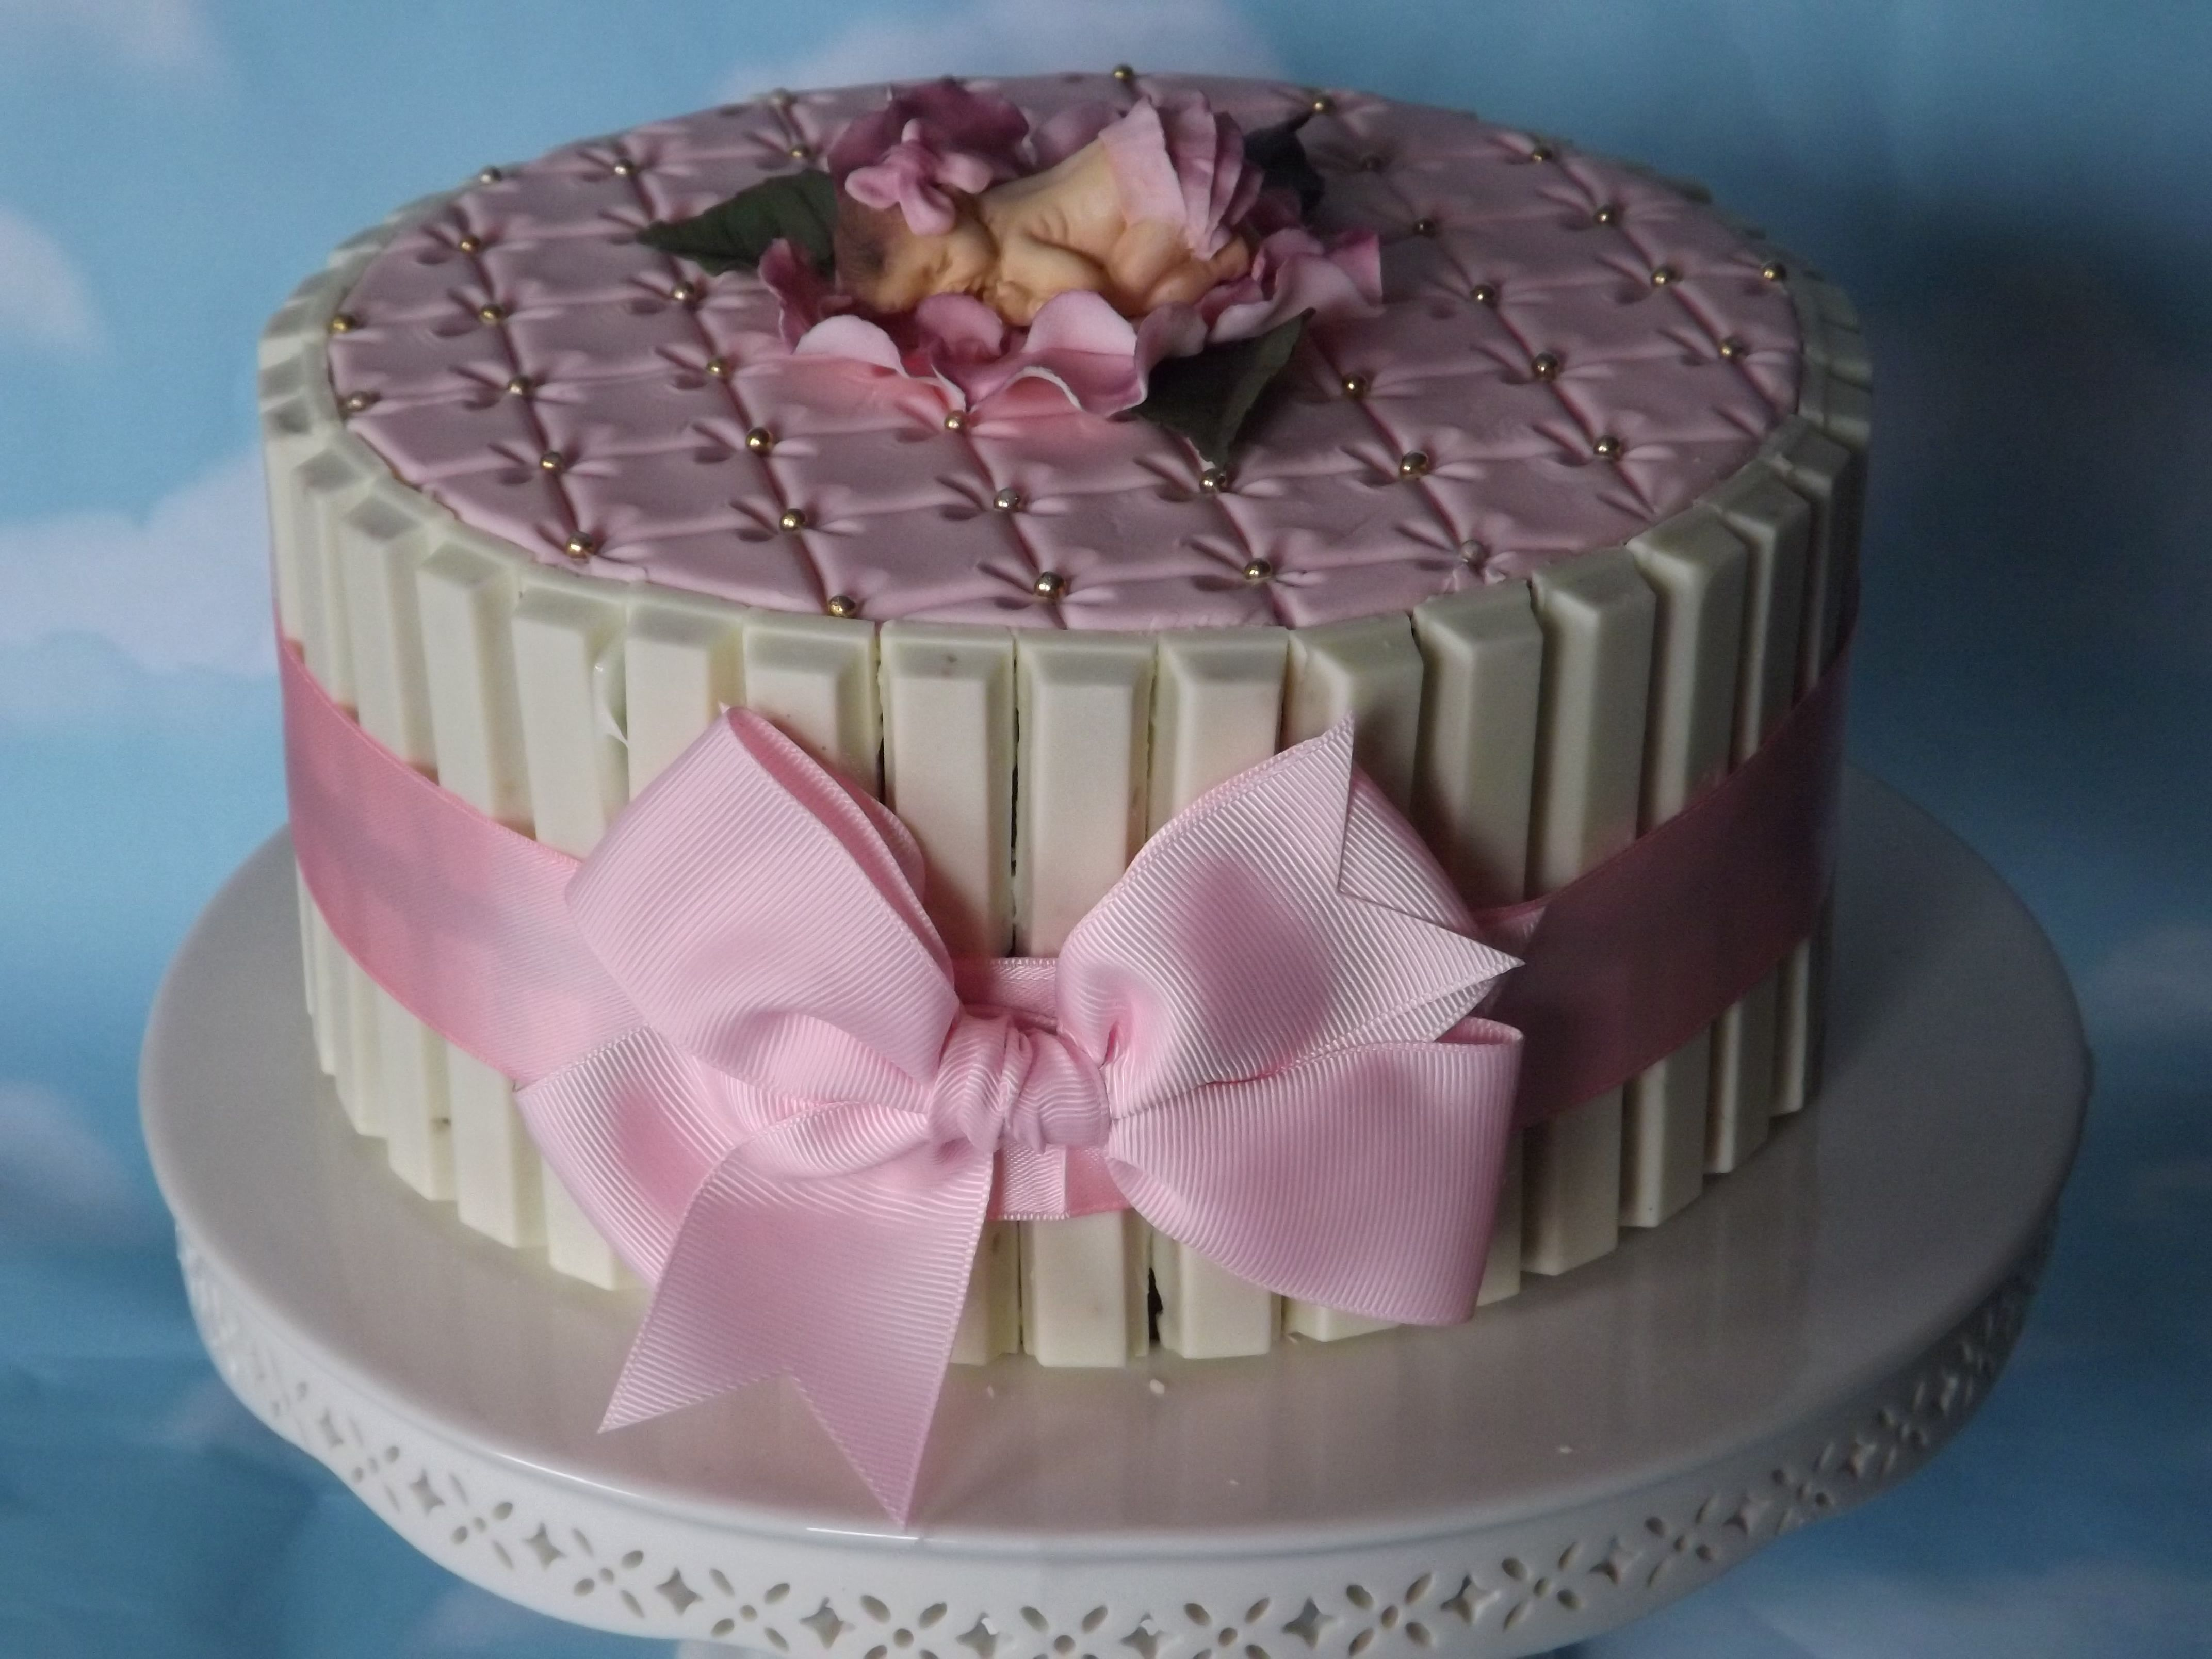 Exceptional Baby Shower Cake Decorating Kits Part - 12: Baby Shower - Baby Shower Kit Kat Cake. Fondant Baby Topper Laying On A Open